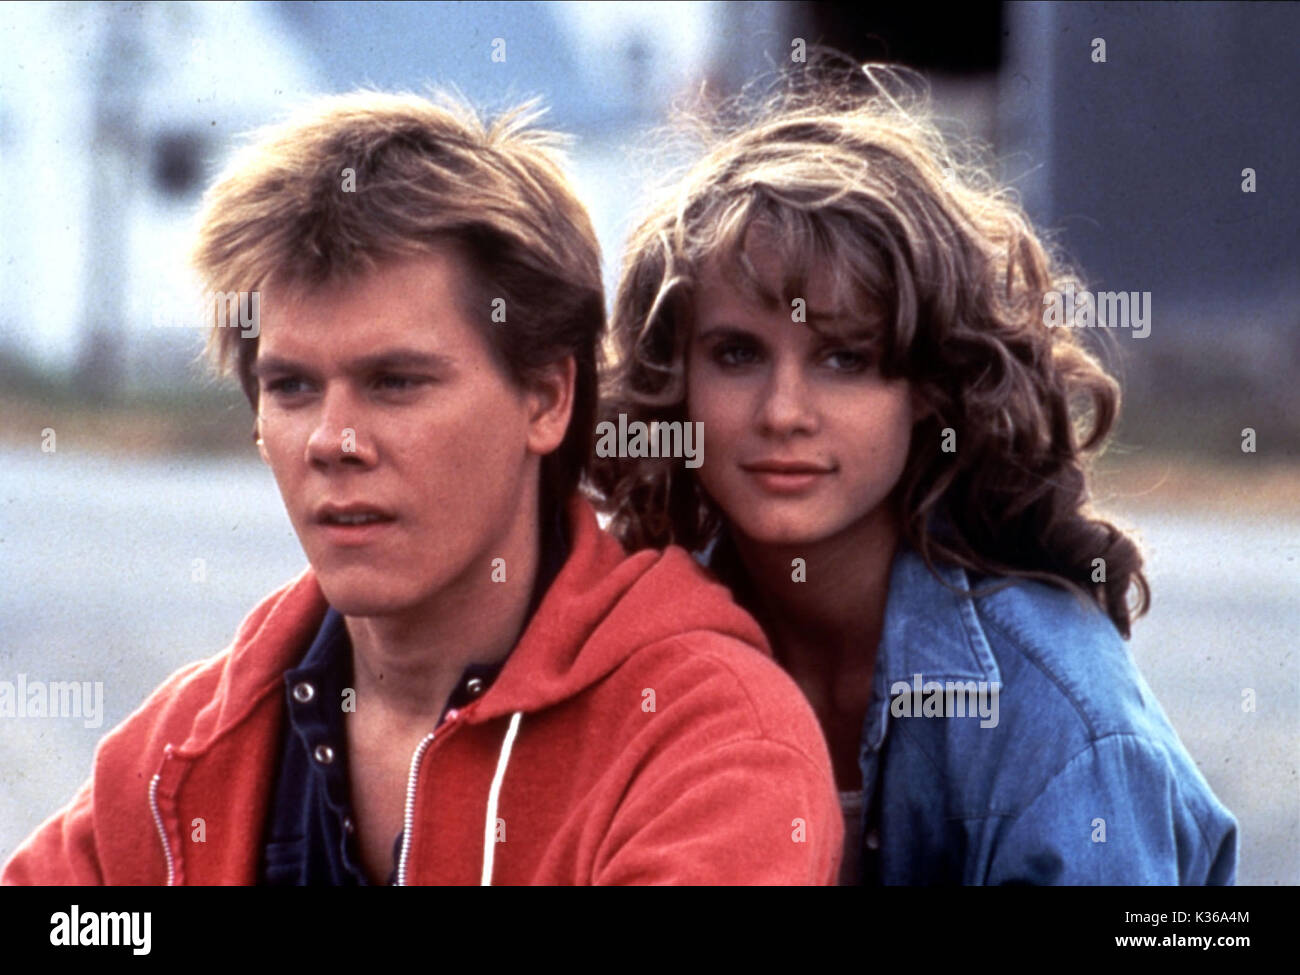 footloose dating Find someone for the new you someone who shares not just the same lifestyle but also the same life-story.